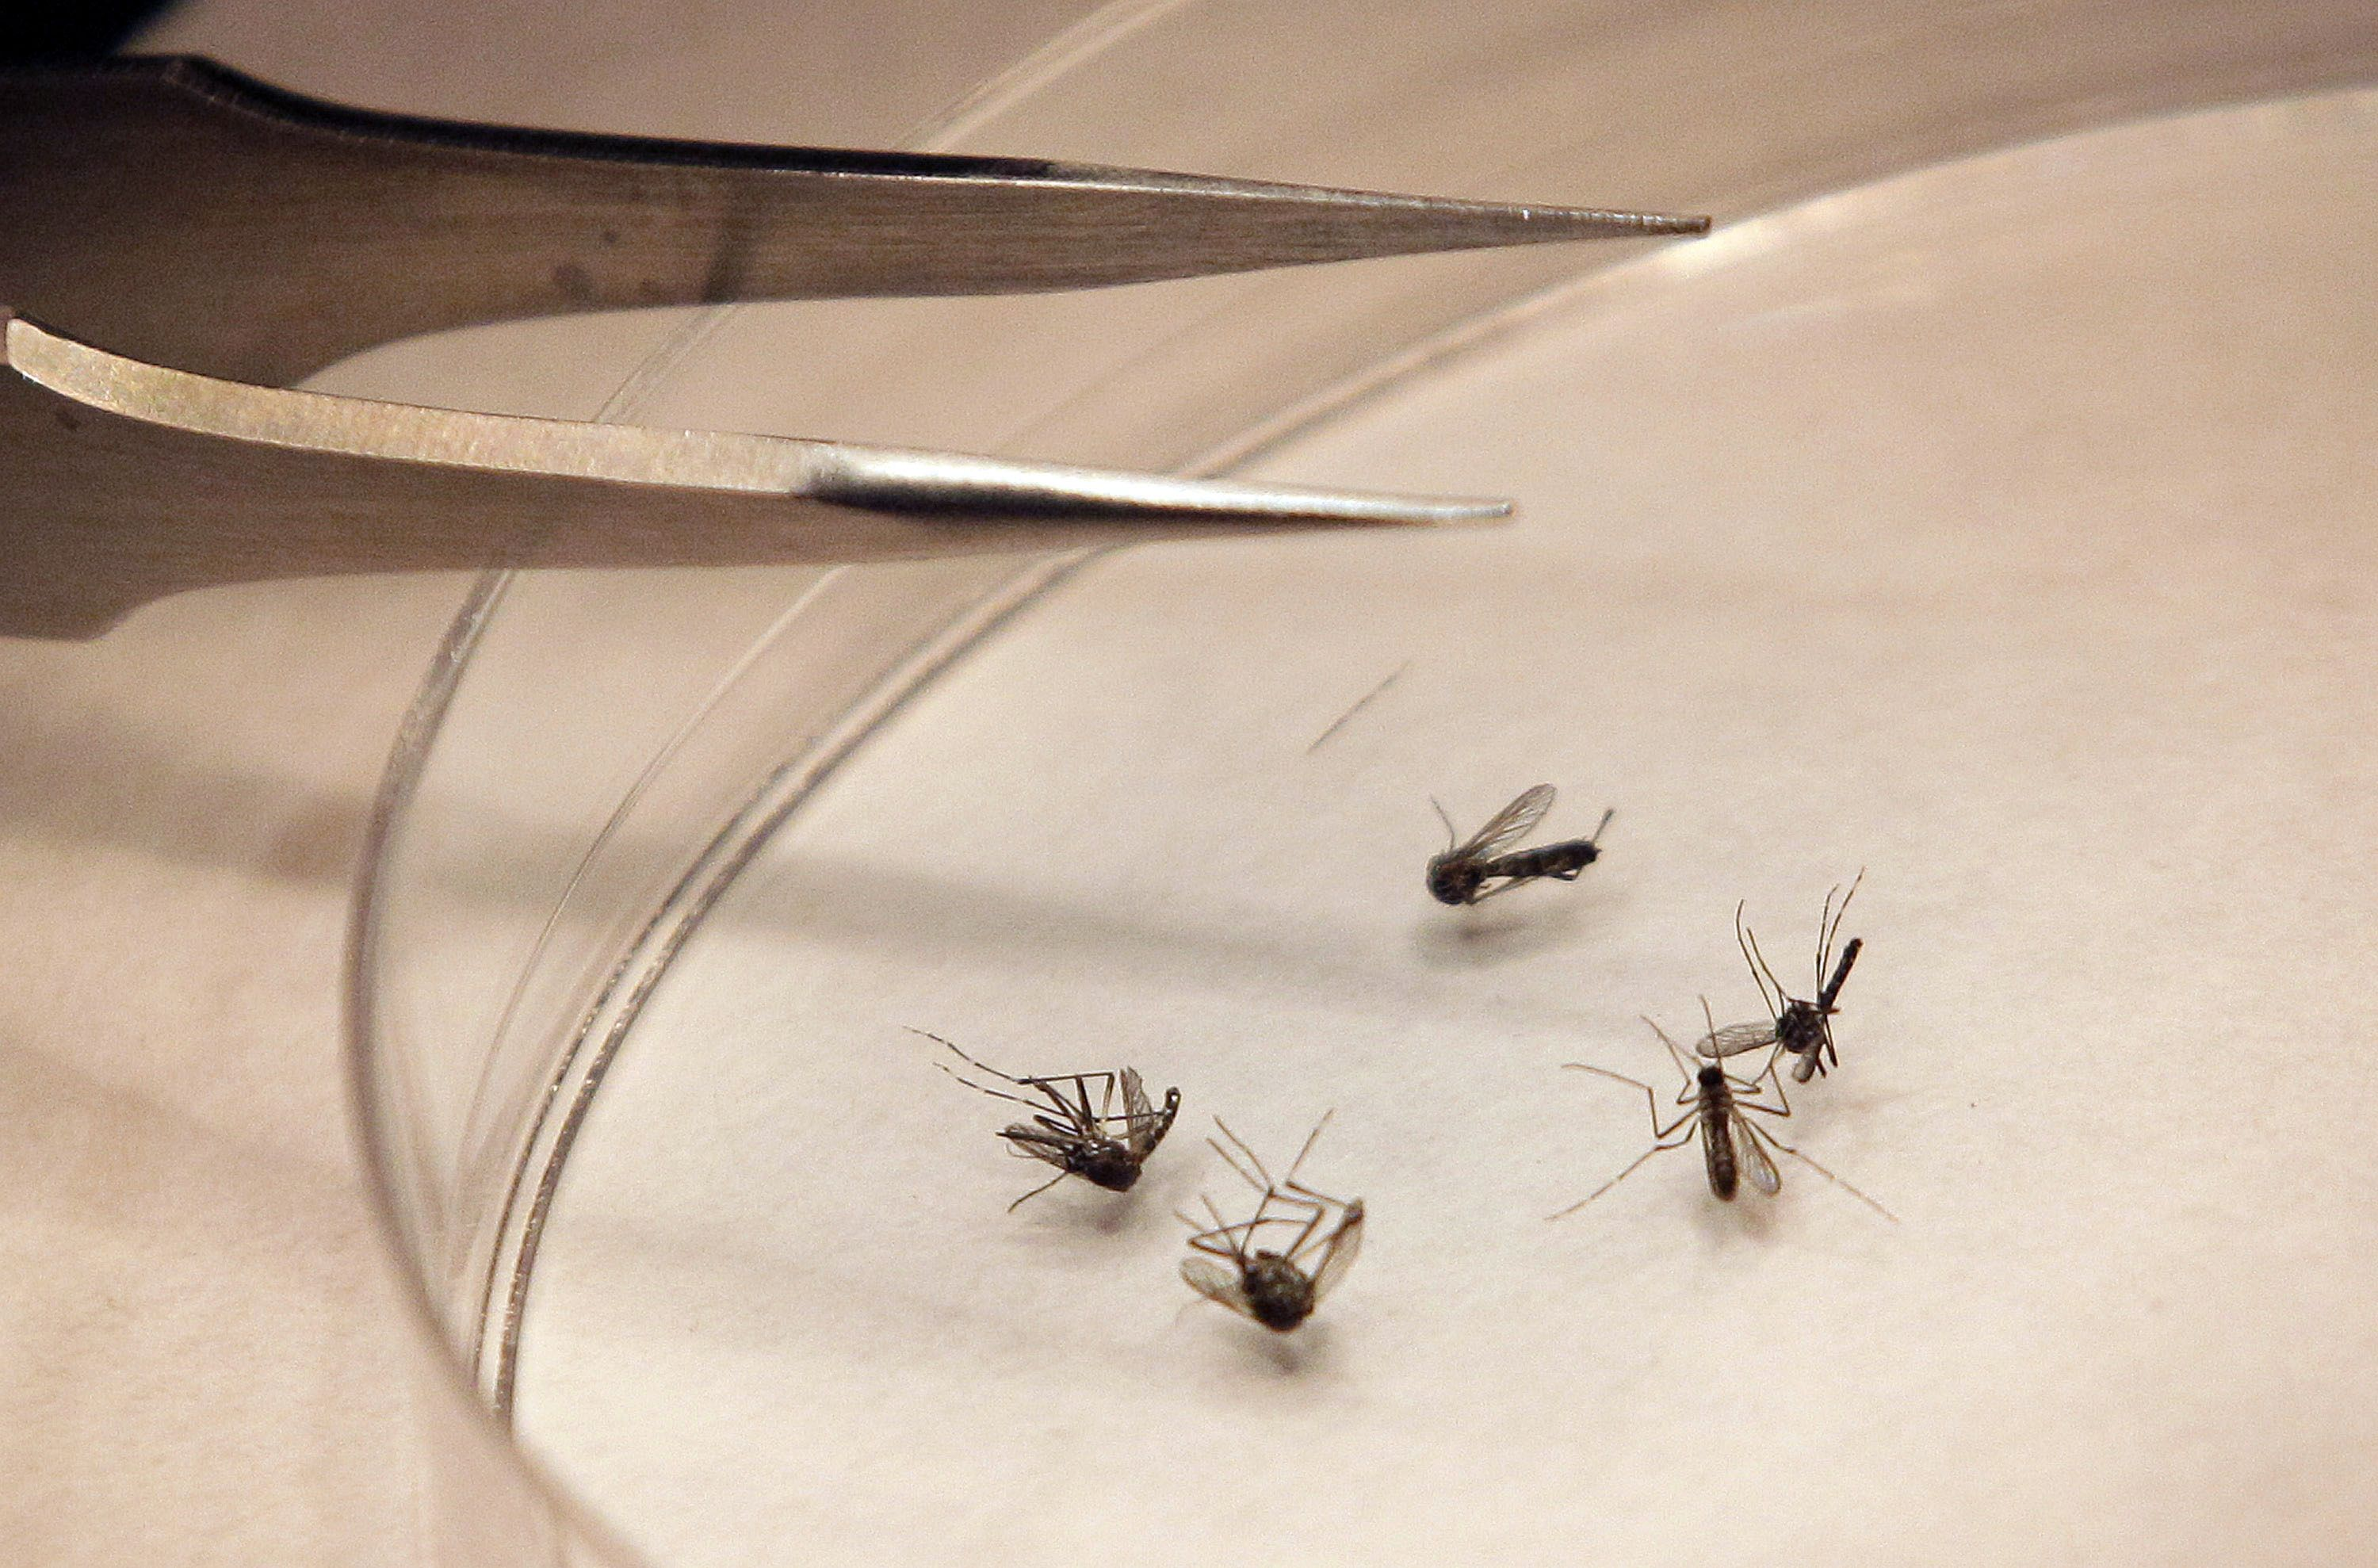 File- In this Aug. 16, 2012 file photo, mosquitos are sorted at the Dallas County mosquito lab in Dallas. A cooler-than-normal spring has slowed the breeding season for mosquitoes, but experts warn this doesn't mean that Texans should let down their guard when it comes to protecting themselves from the West Nile virus. (AP Photo/LM Otero, File)